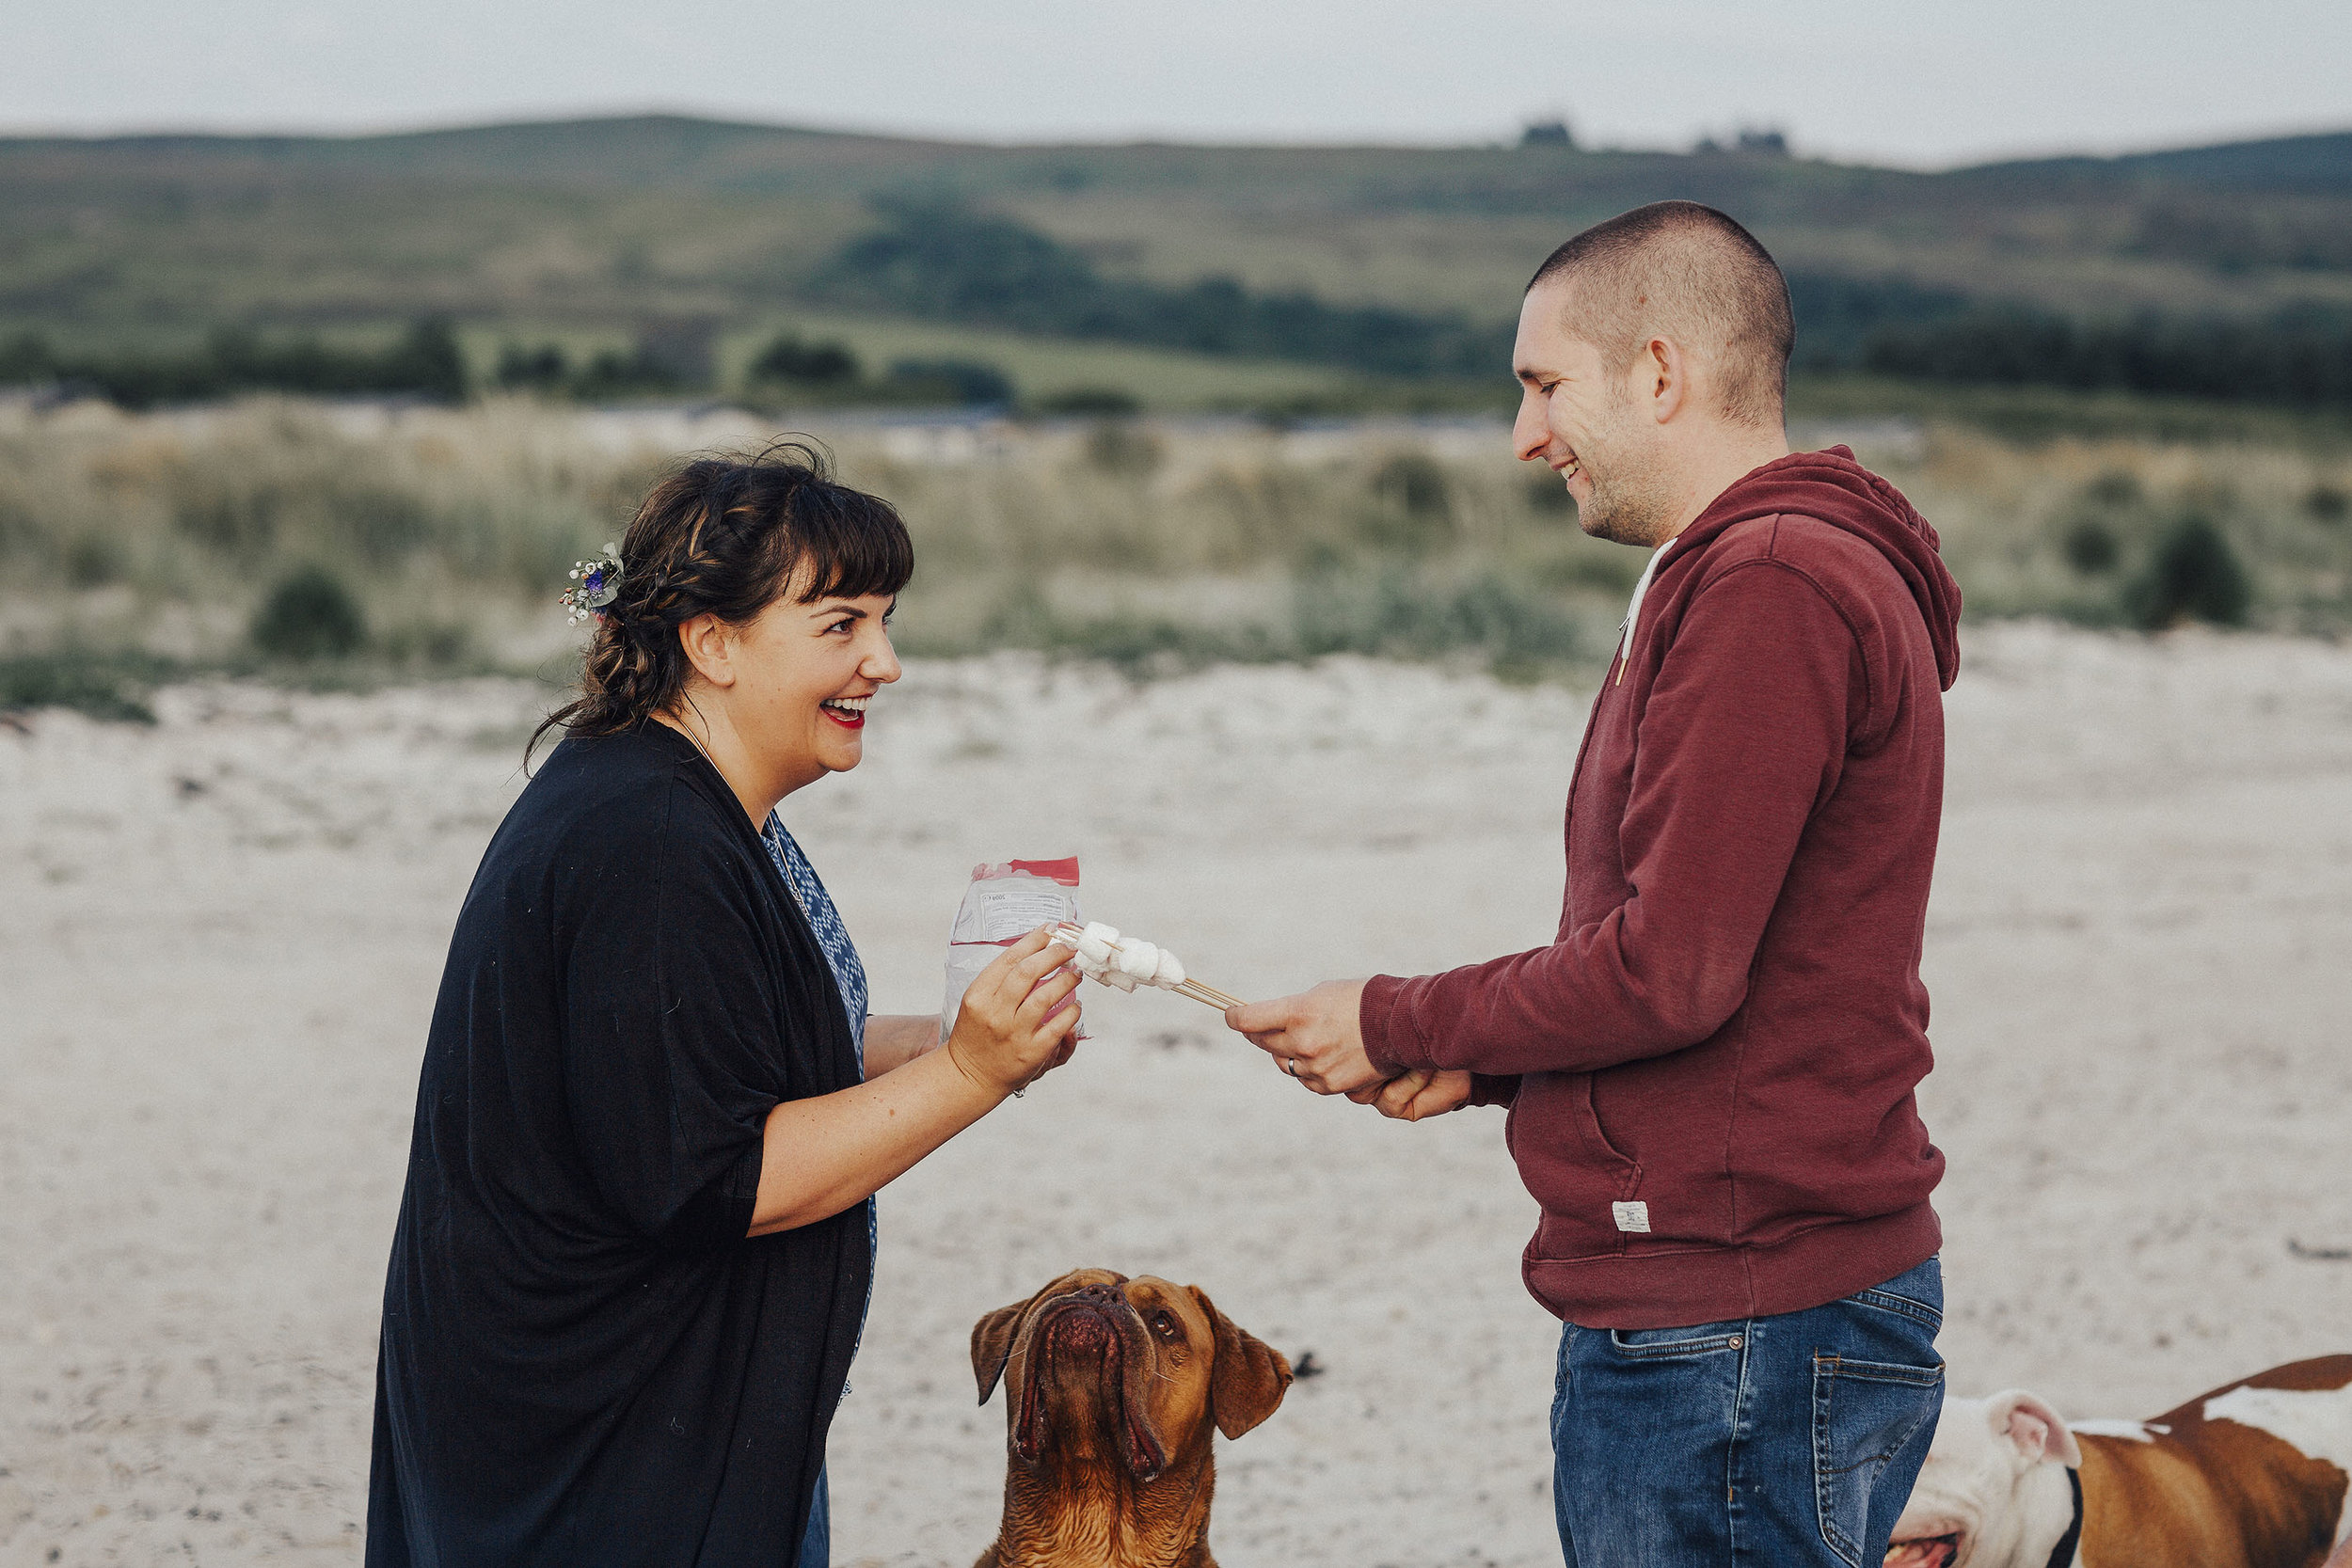 SCOTTISH_ELOPEMENT_PHOTOGRAPHER_PJ_PHILLIPS_PHOTOGRAPHY_158.jpg